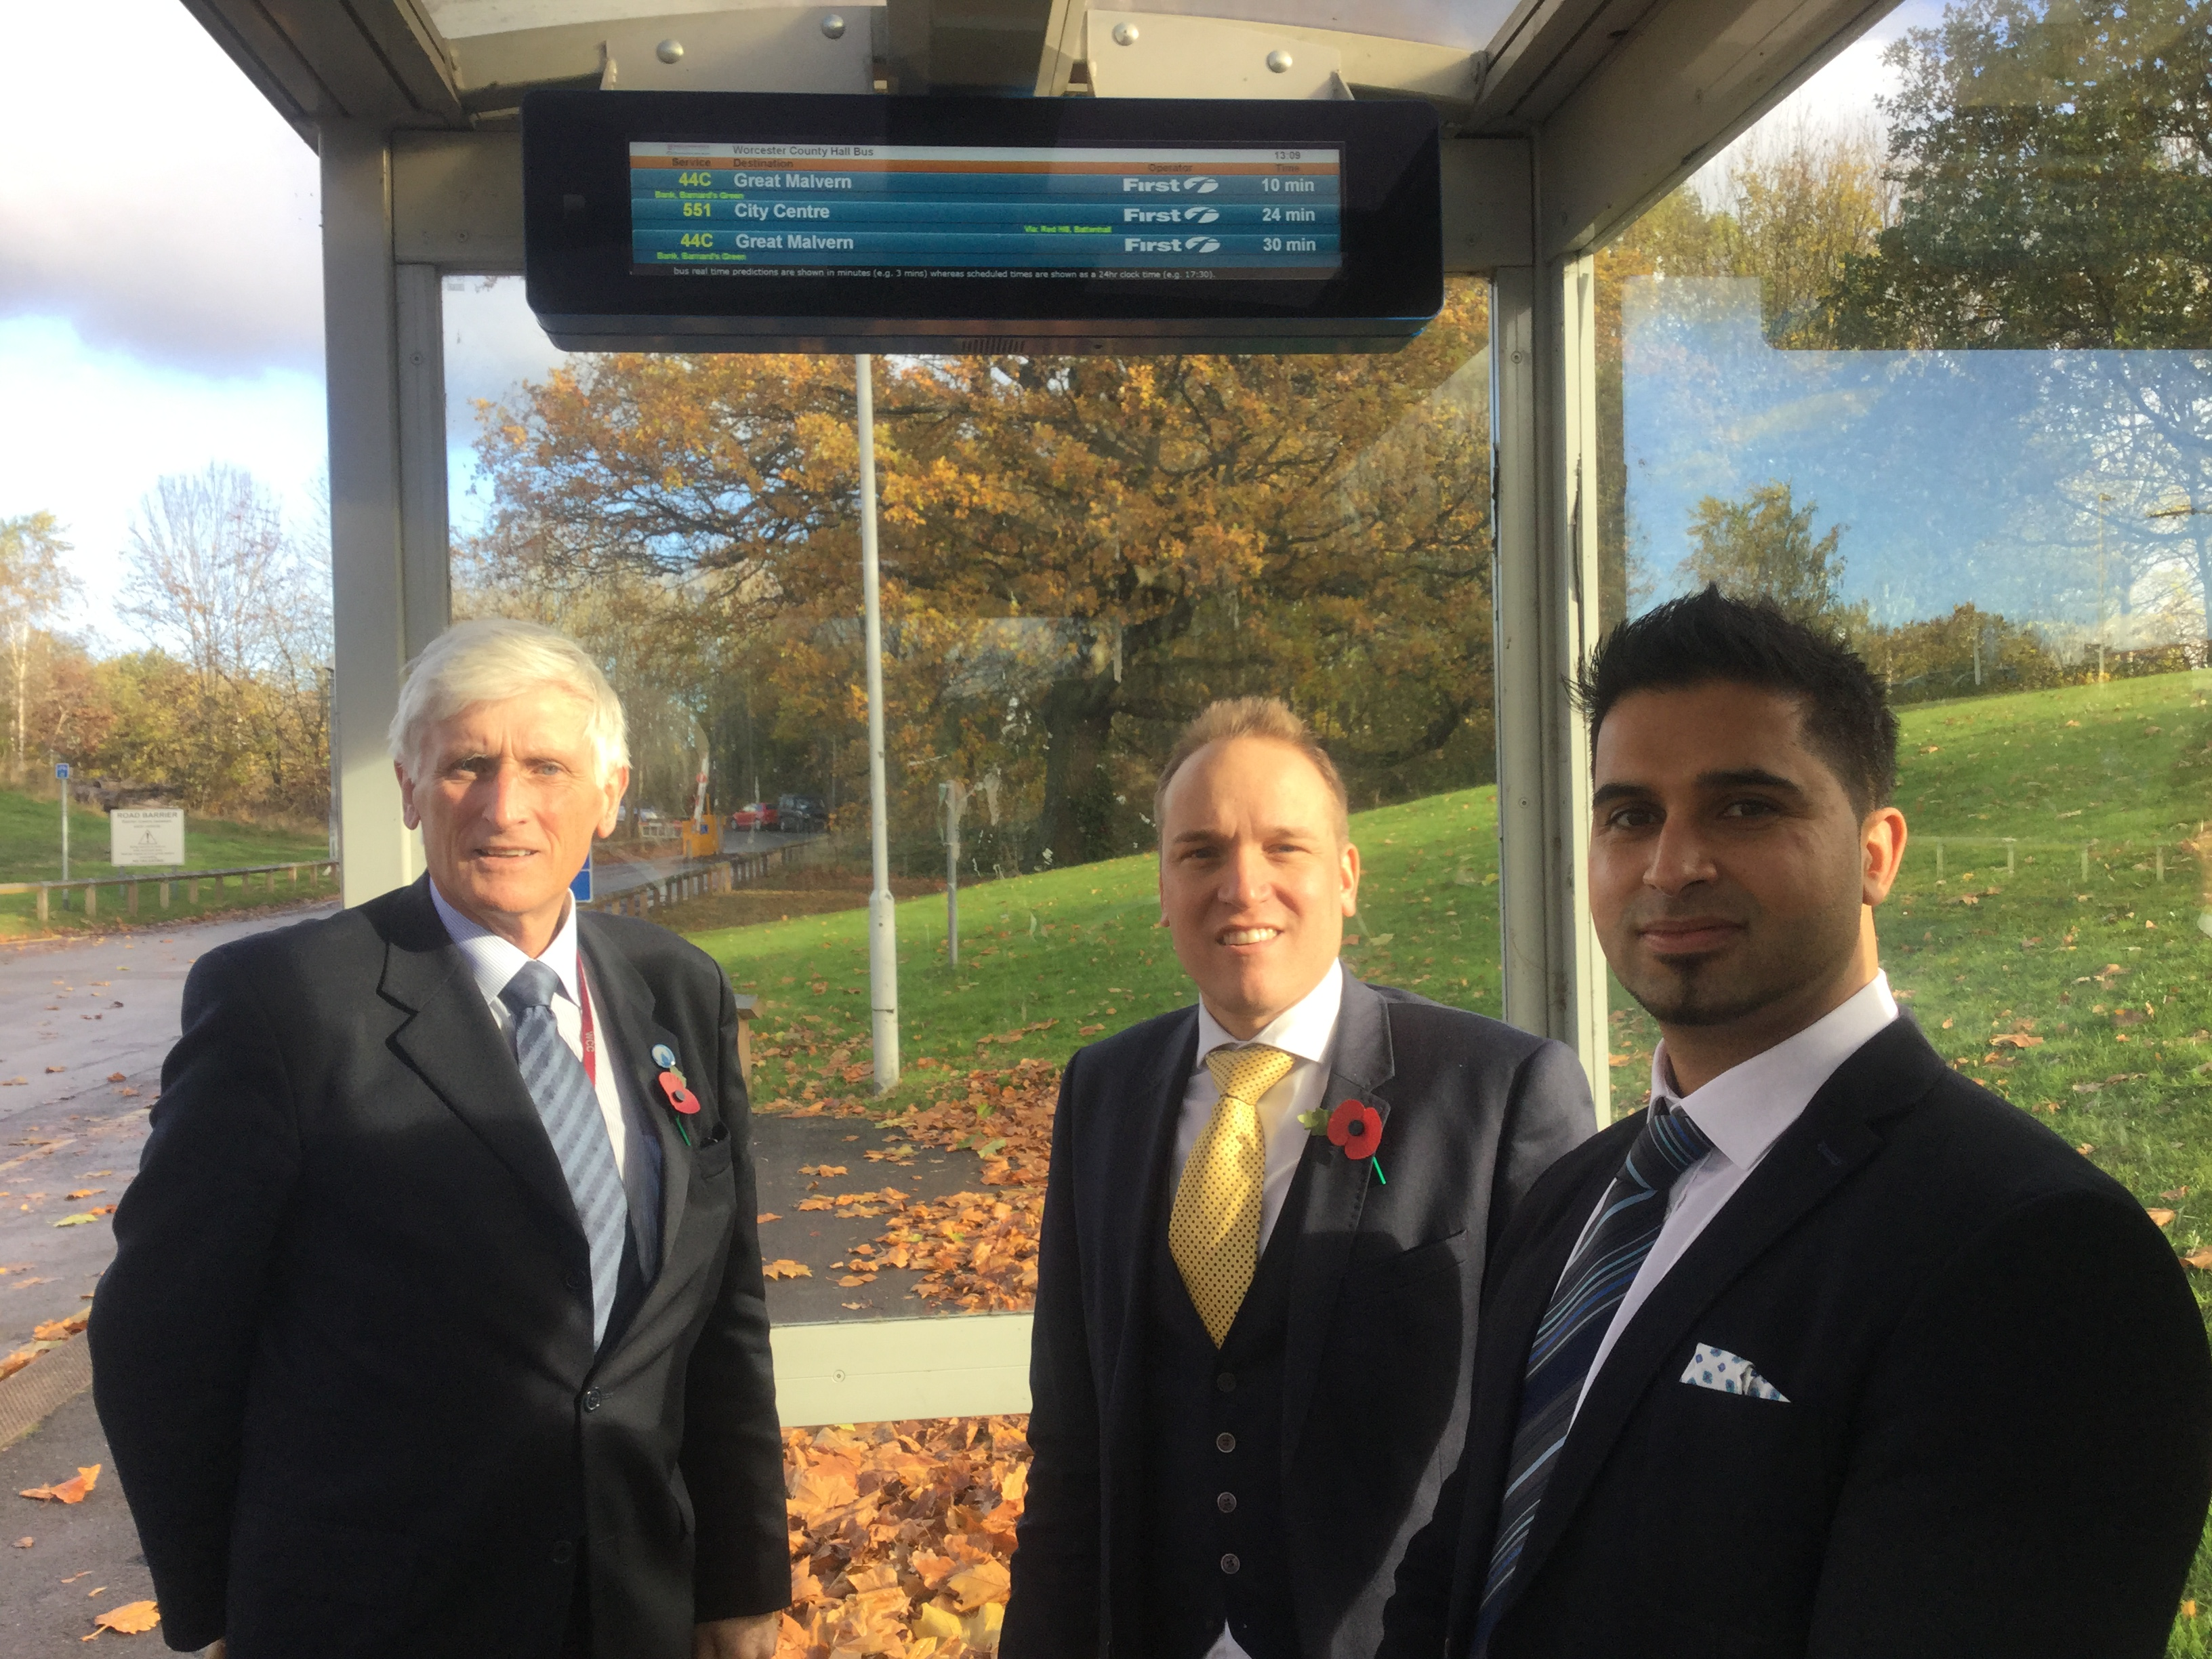 Cllr Ken Pollock, cabinet member for Economy, Skills and Infrastructure, Cllr Marcus Hart, cabinet member for Highways and Saff Riaz from RSL (Regional Services Limited).